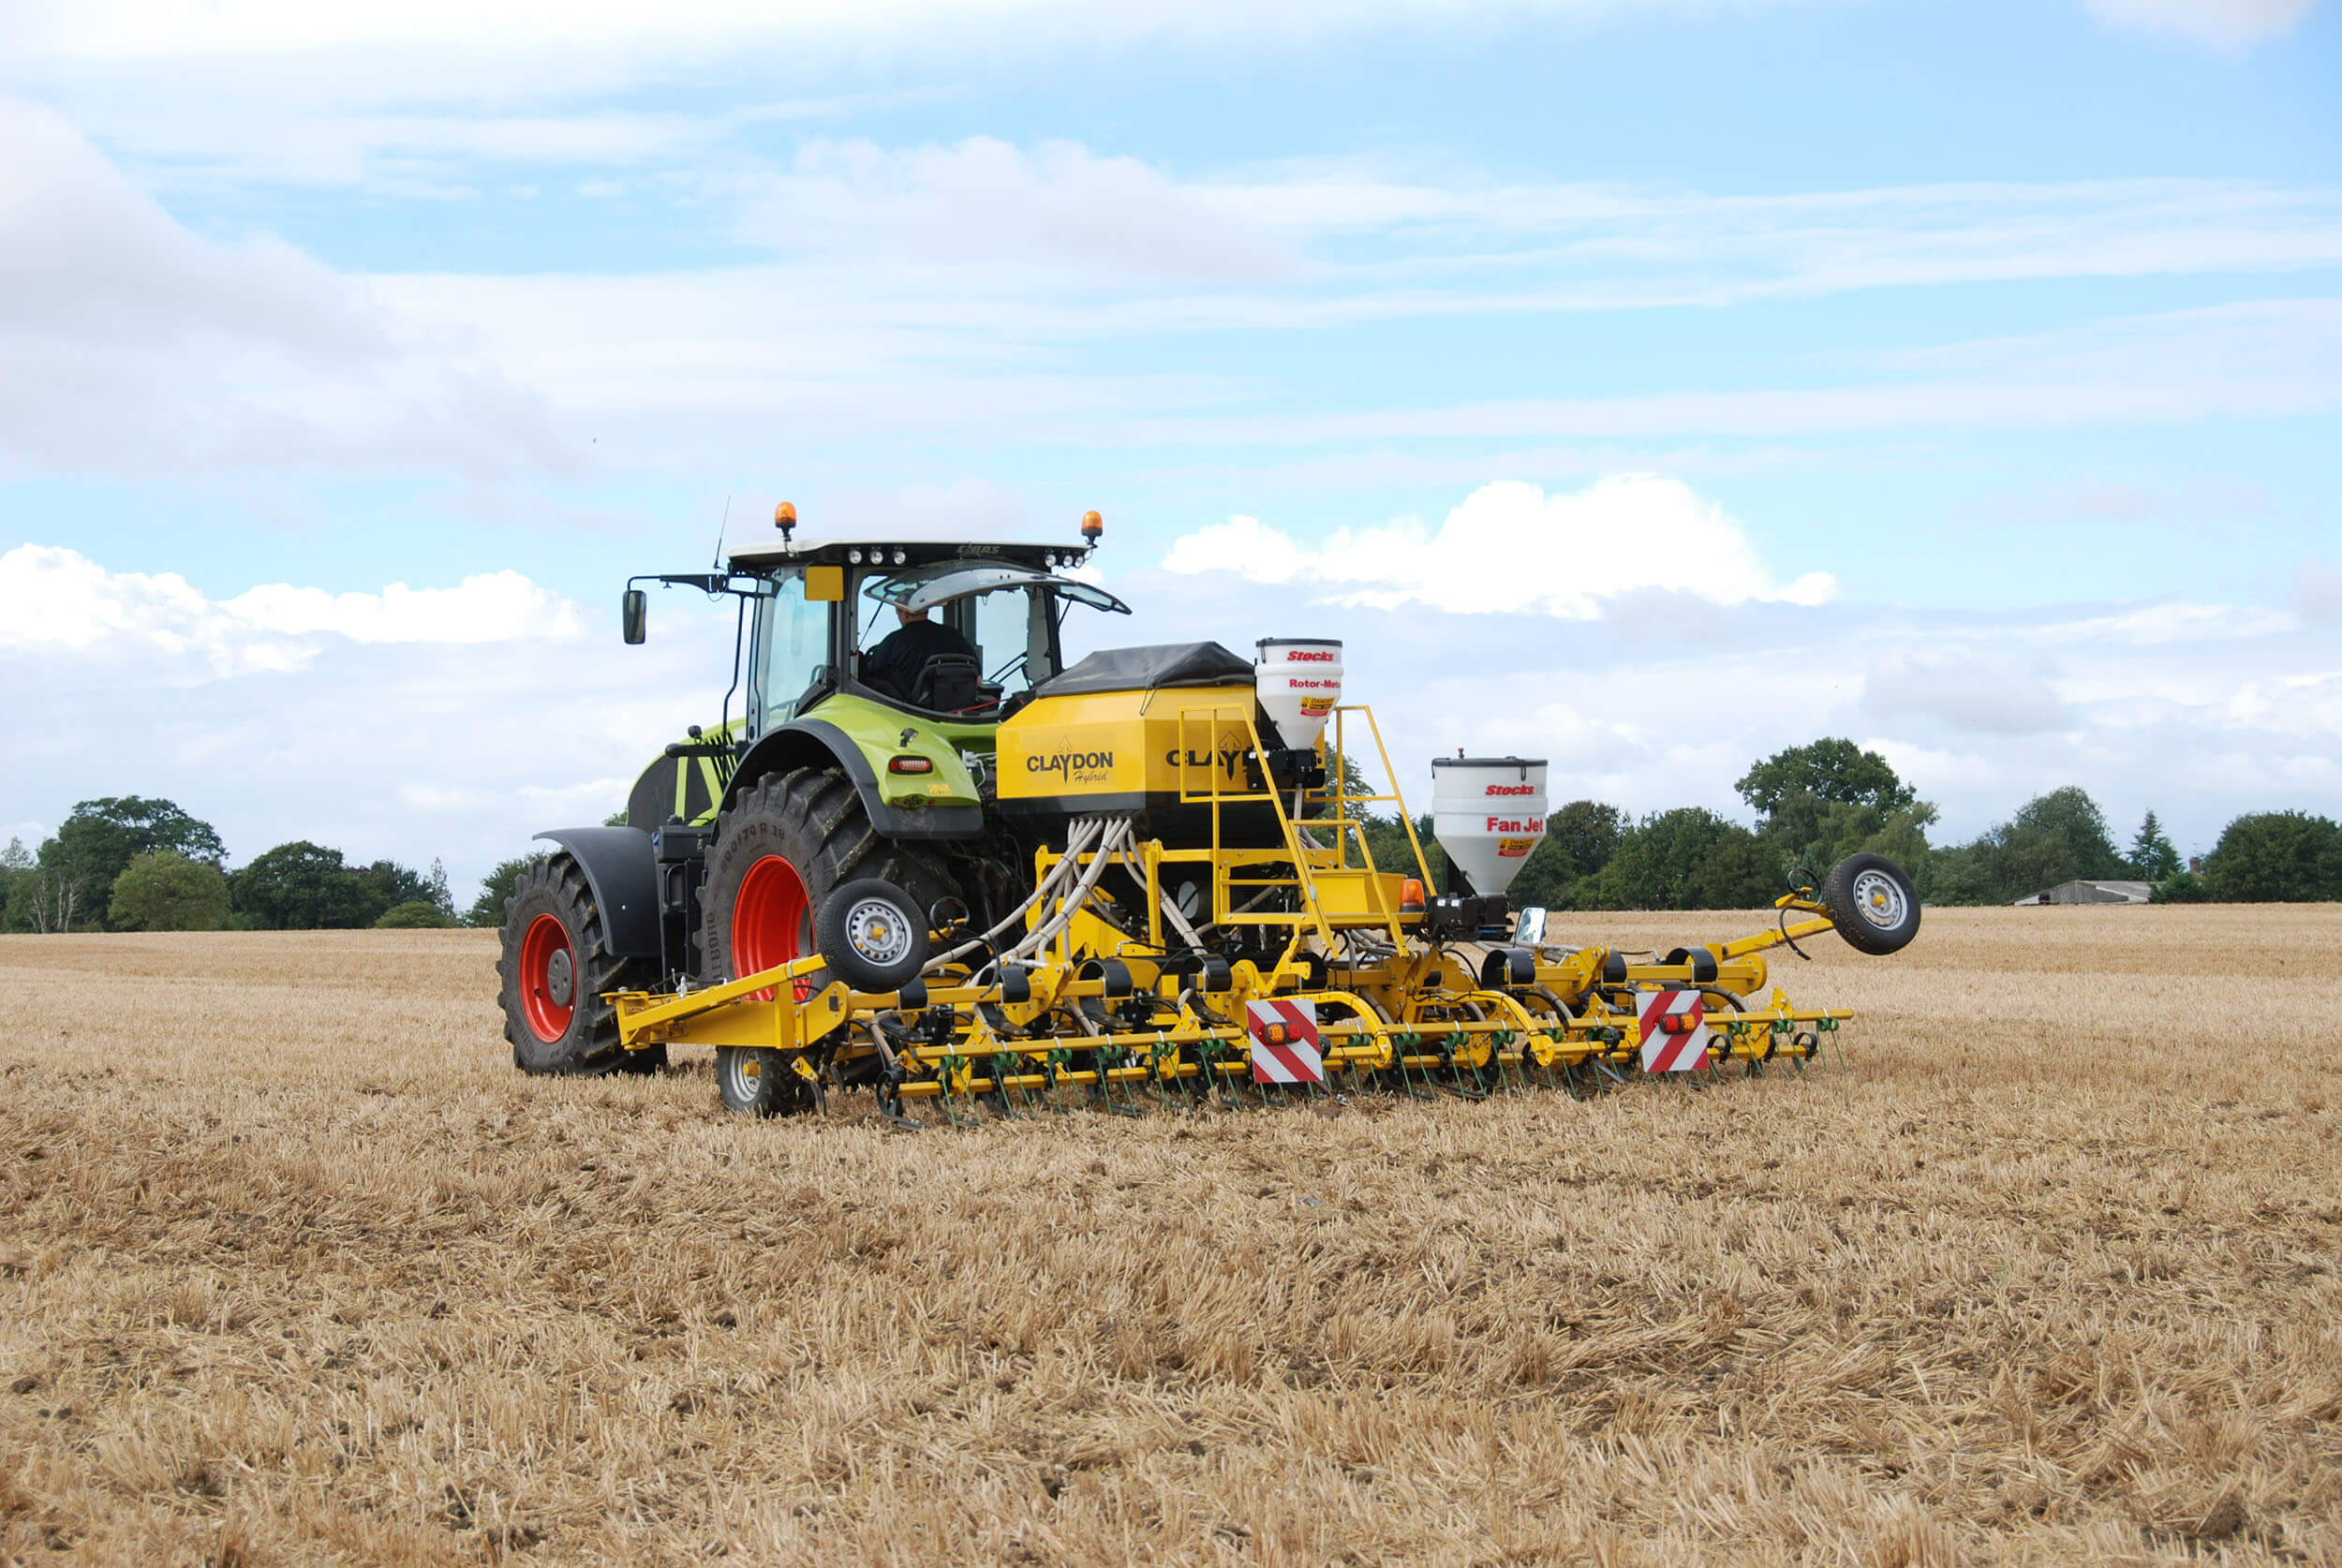 6m mounted direct seed drill